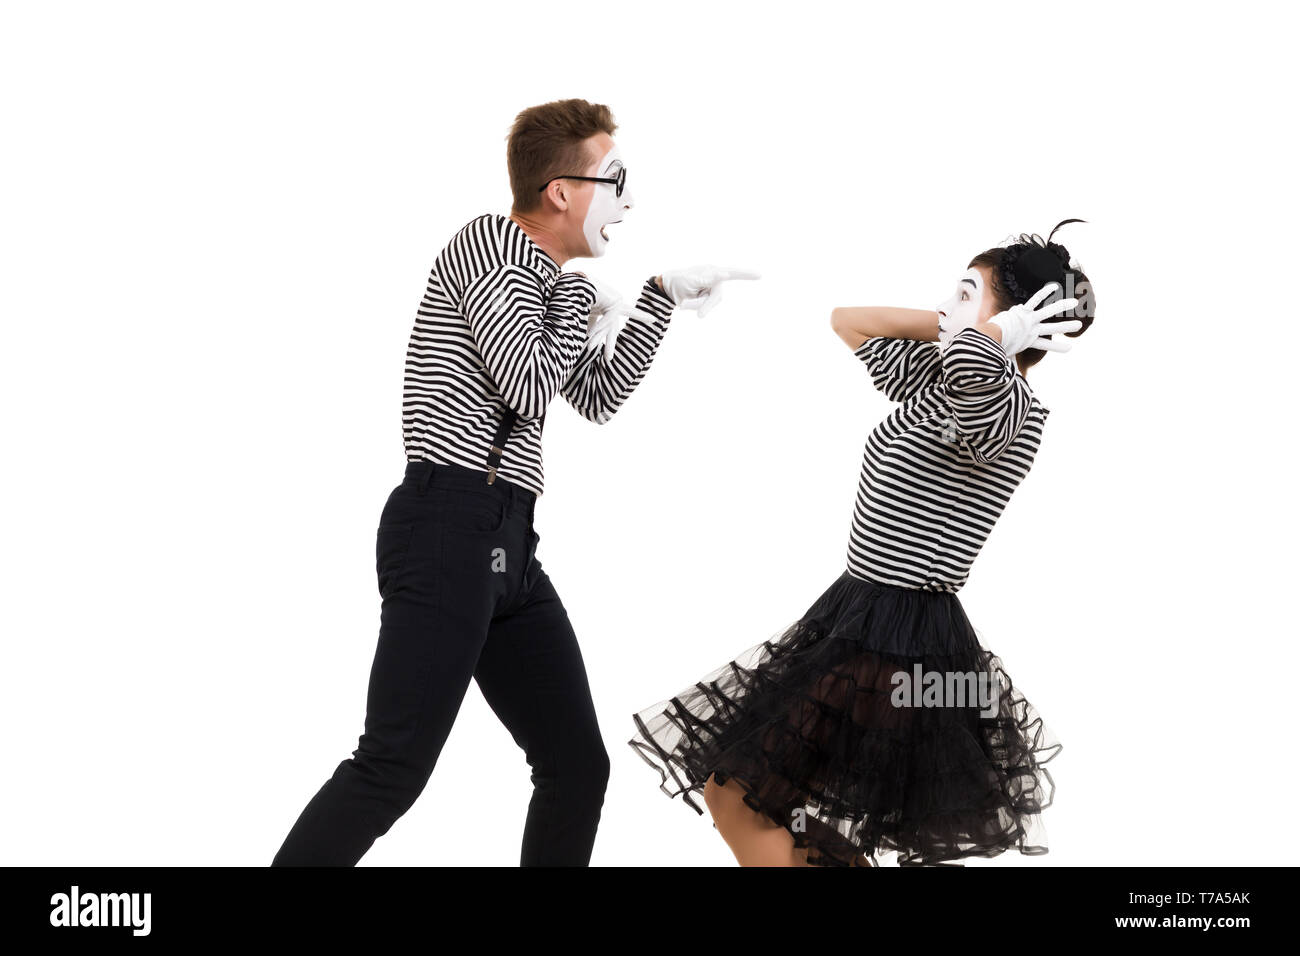 mime couple quarrels and shouts at each other isolated on white background - Stock Image